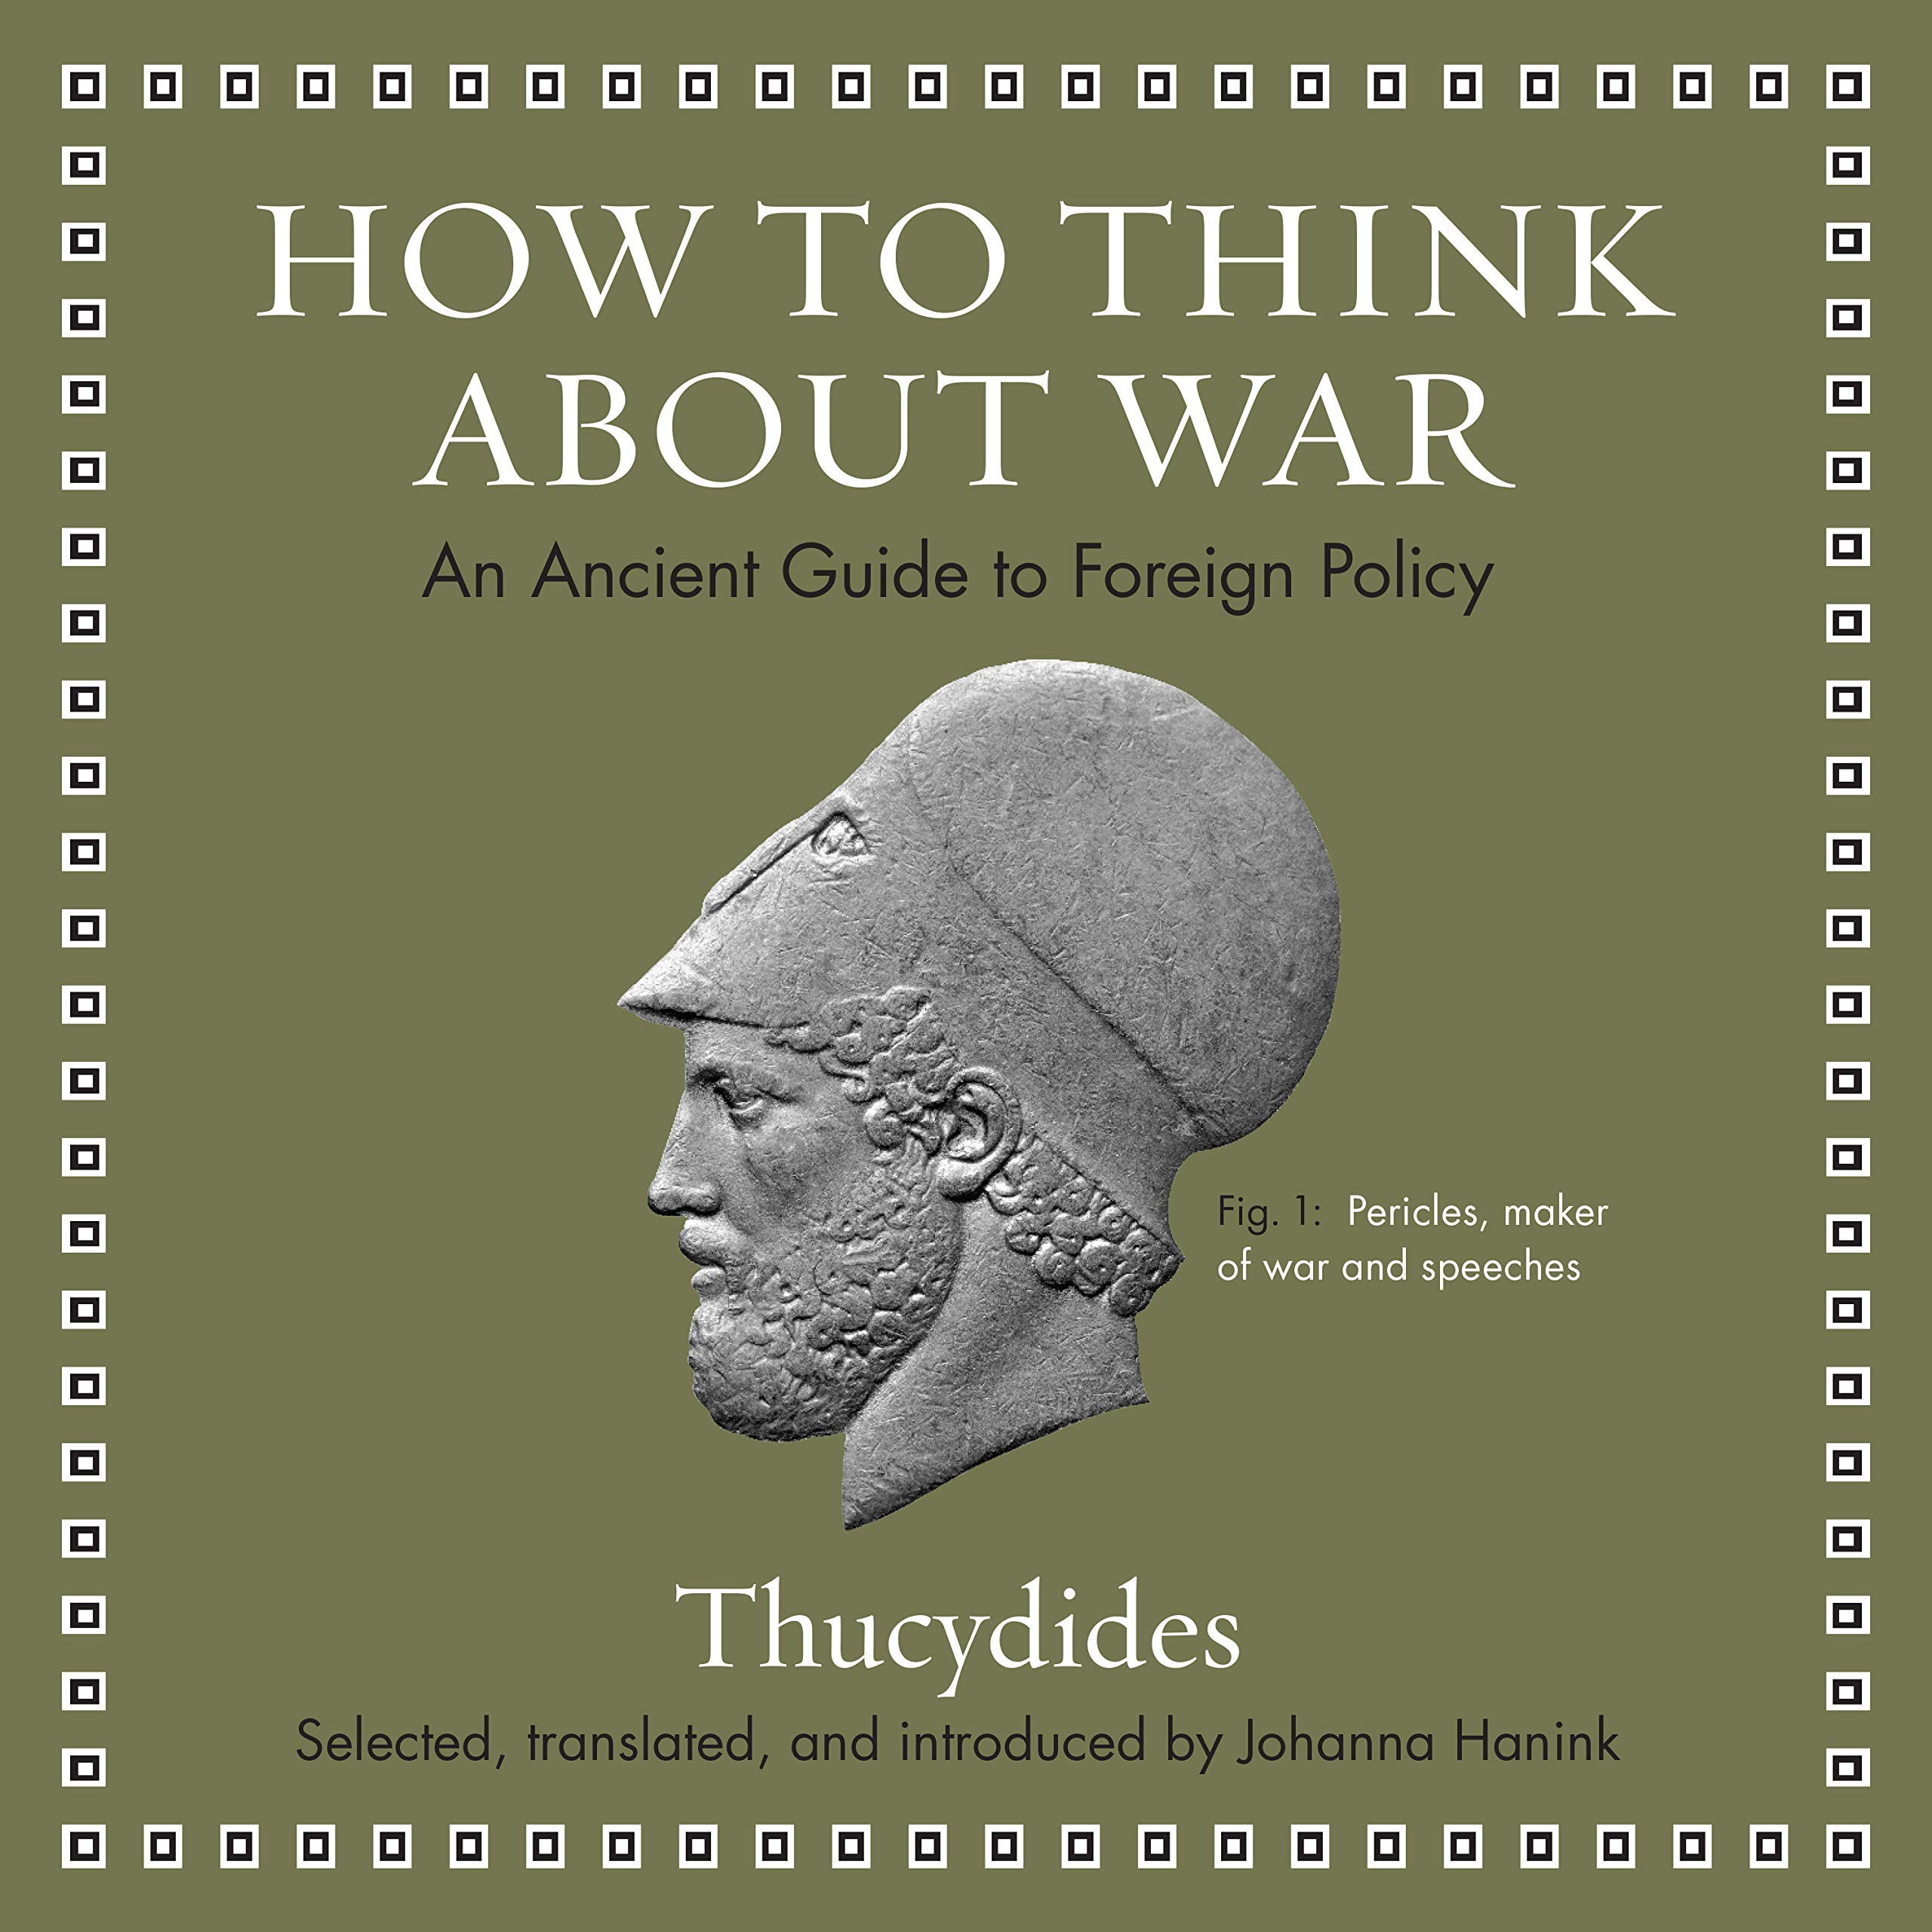 How to Think about War: An Ancient Guide to Foreign Policy: Thucydides, de  Vries, David, Hanink, Johanna, Hanink, Johanna: 9781684571246: Amazon.com:  Books